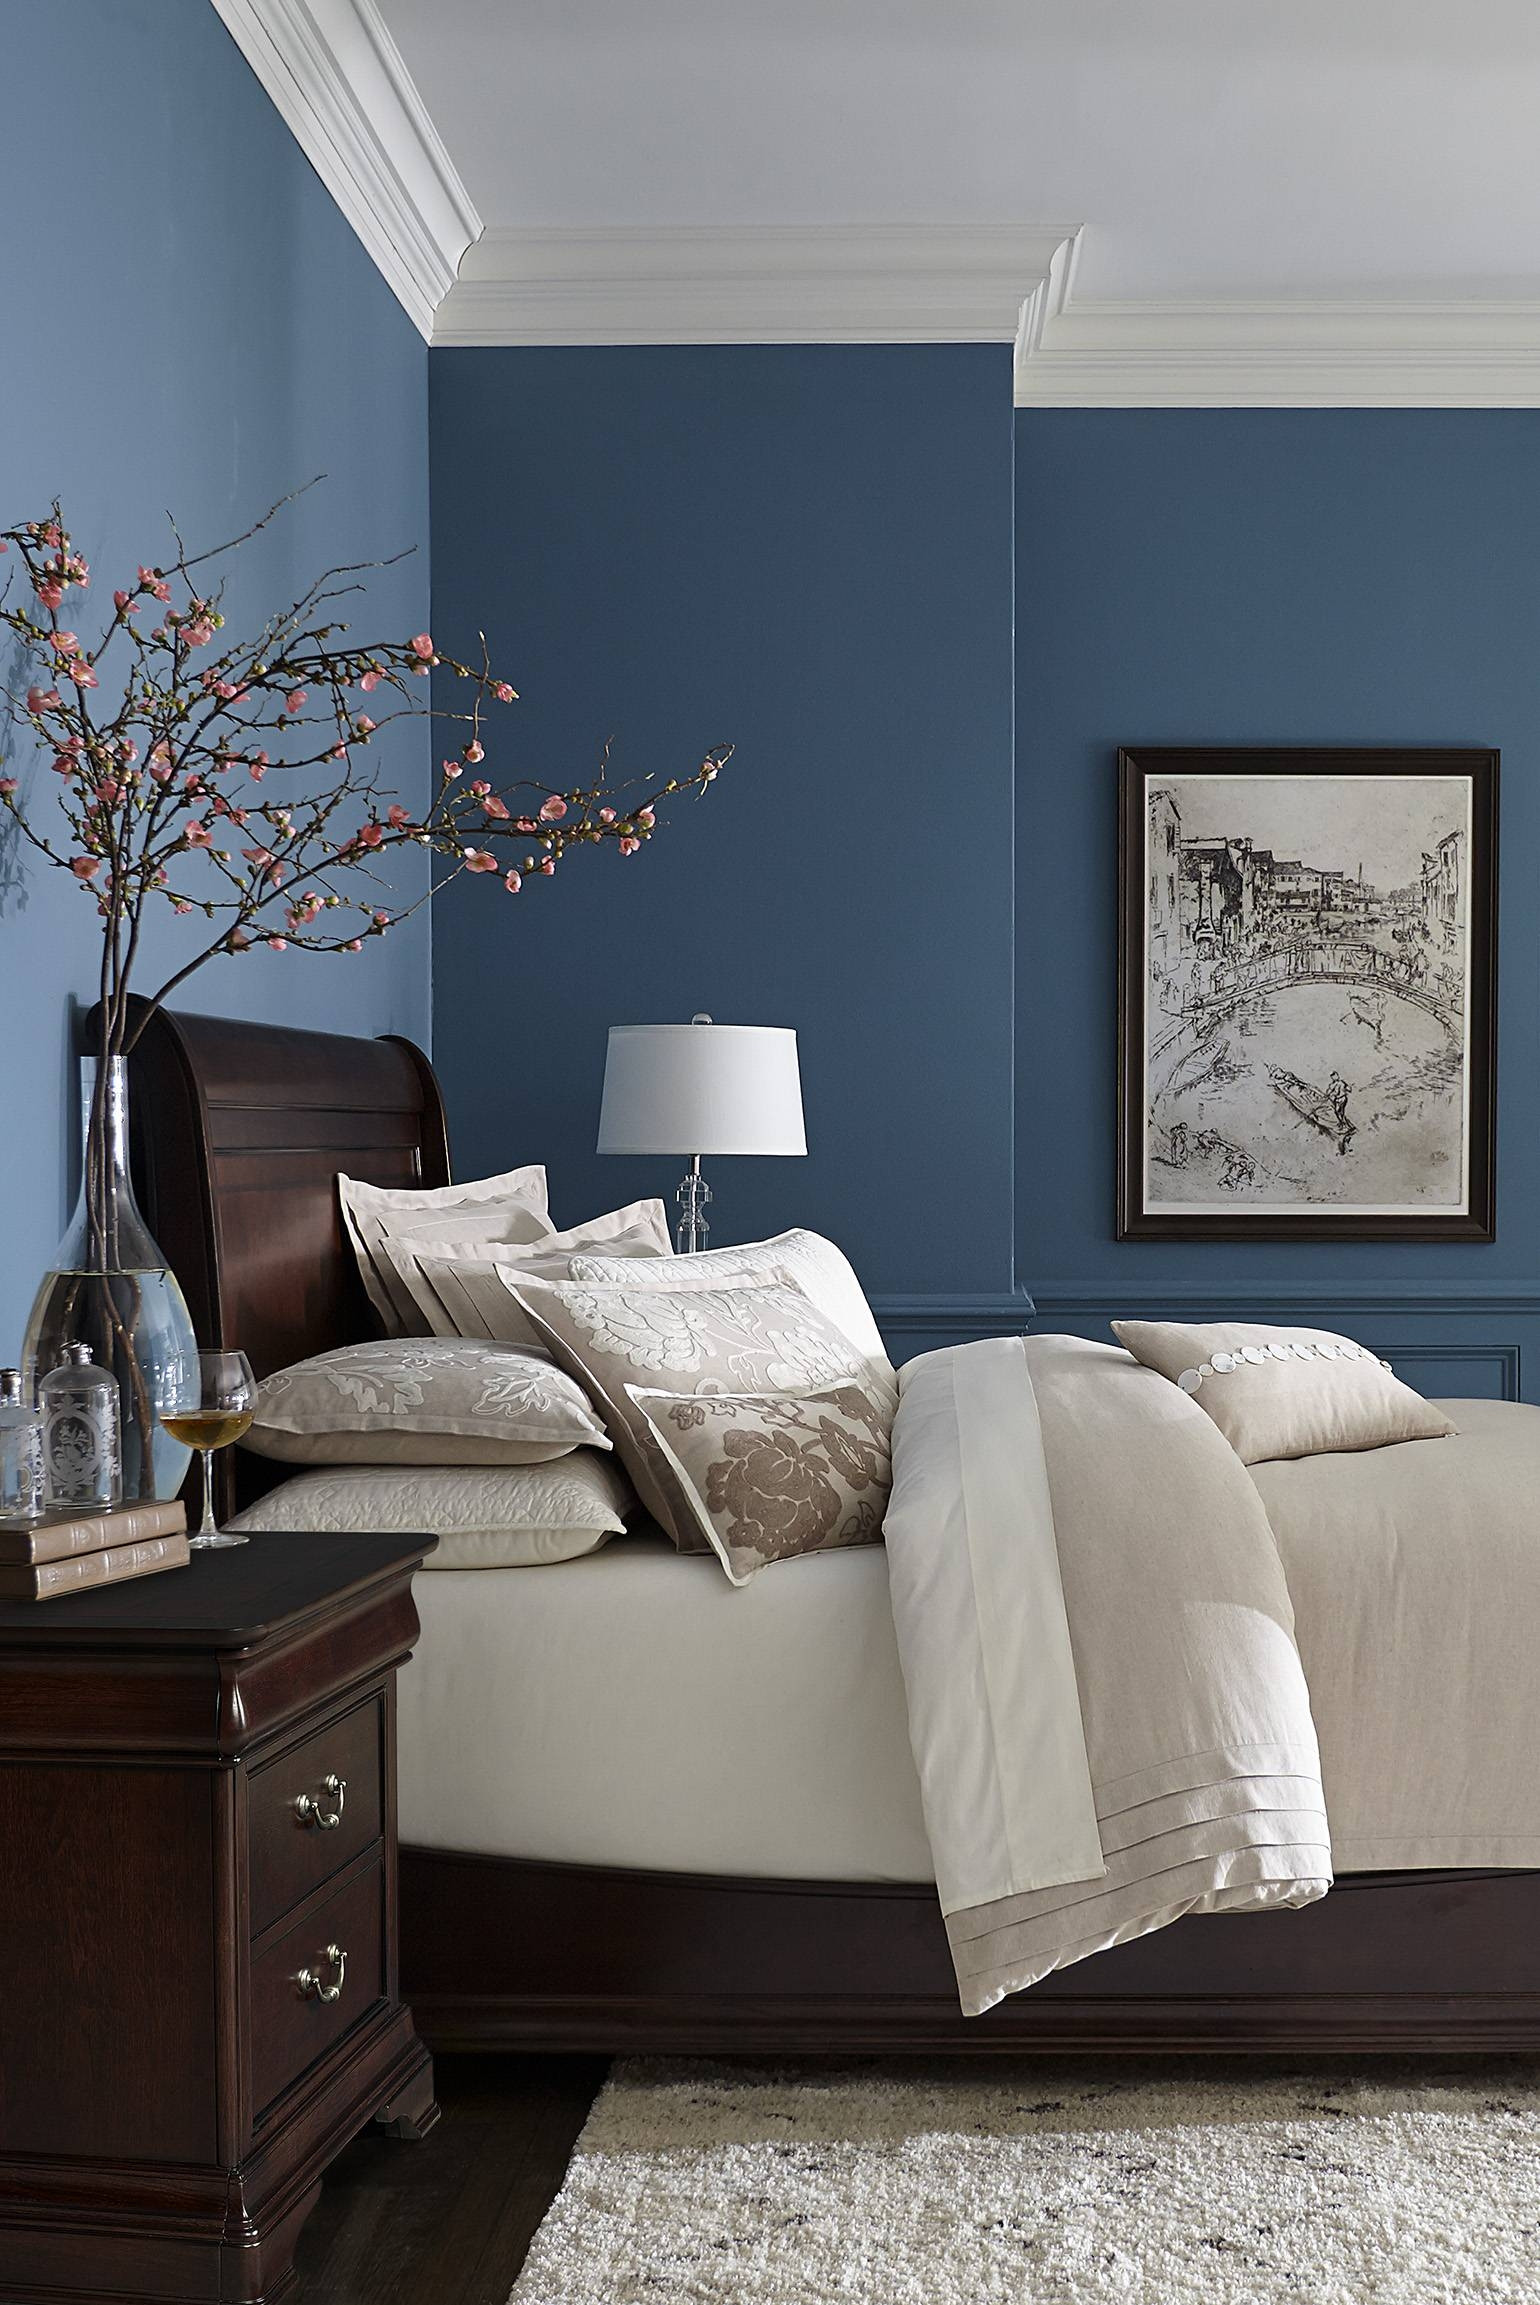 Best ideas about Wall Art For Bedroom . Save or Pin 20 The Best Bedroom Framed Wall Art Now.